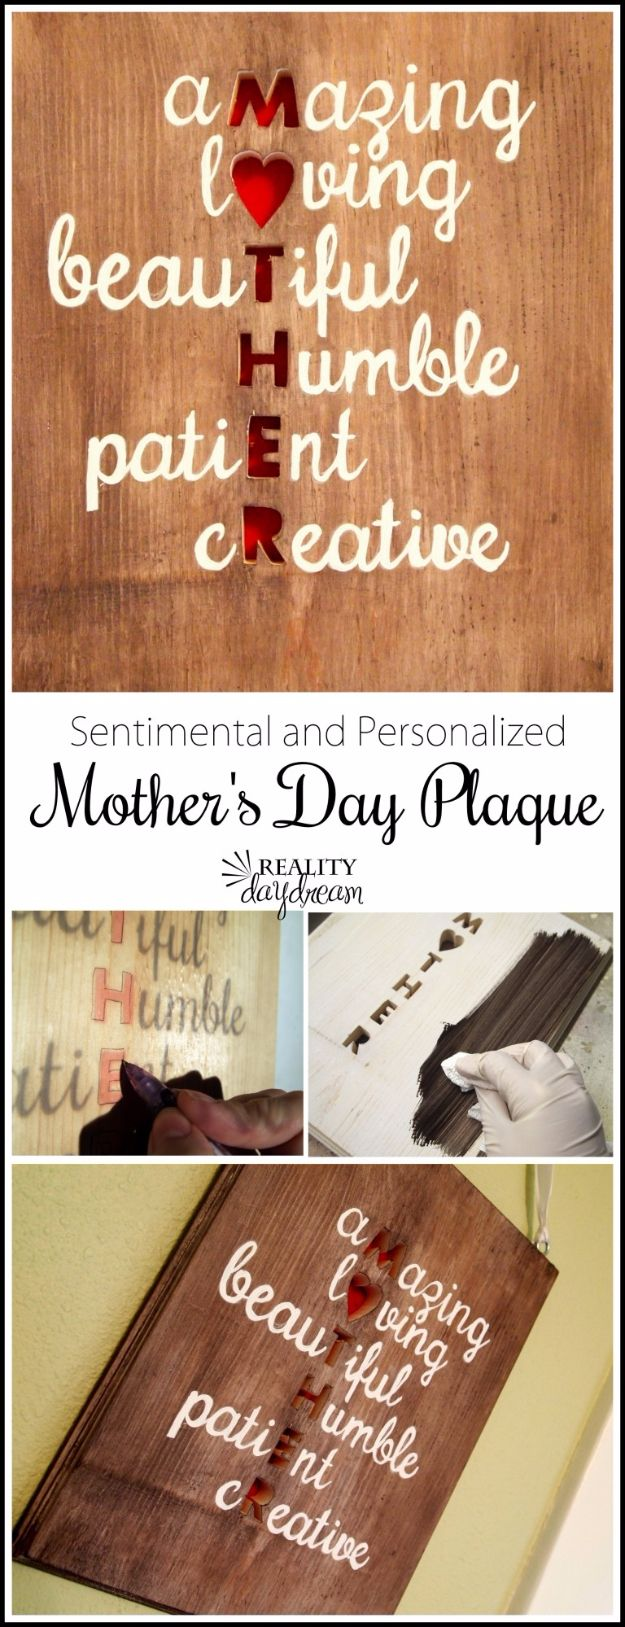 274 best diy gifts images on pinterest diy presents gift ideas 39 creative diy gifts to make for mom solutioingenieria